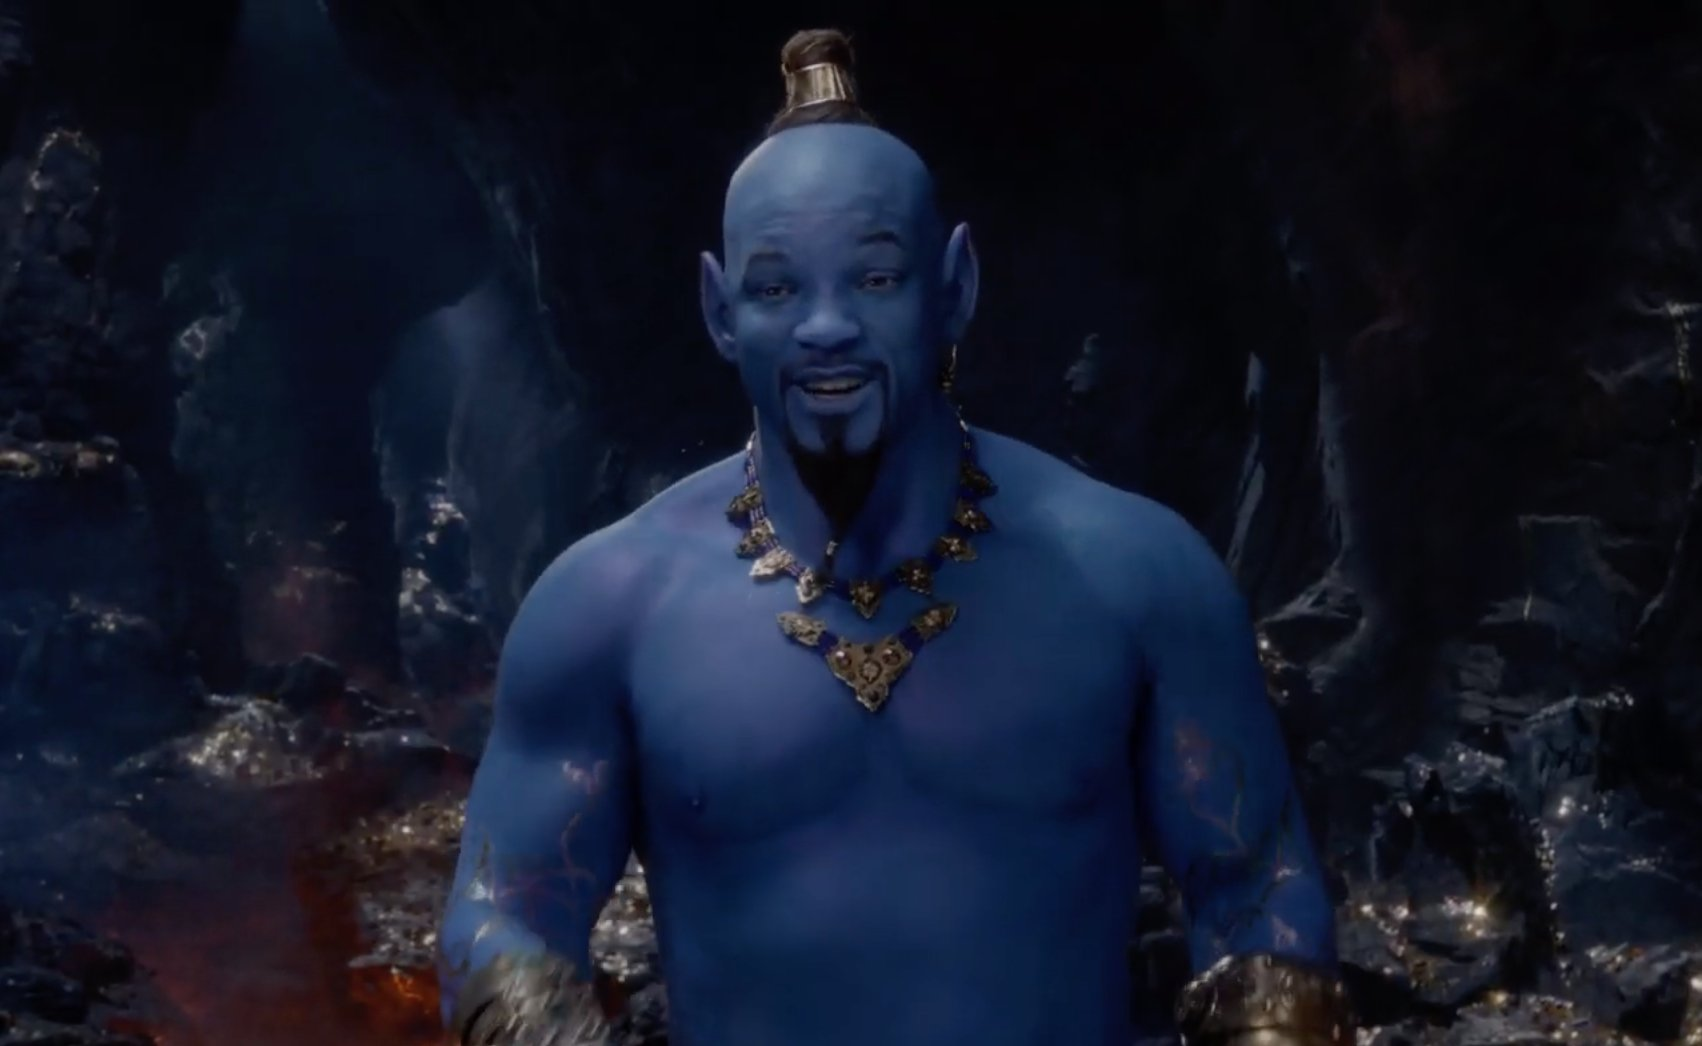 #Aladdin trailer offers first look at Will Smith's blue Genie https://t.co/AaPeJxe8ng https://t.co/mQHX1yCd0i